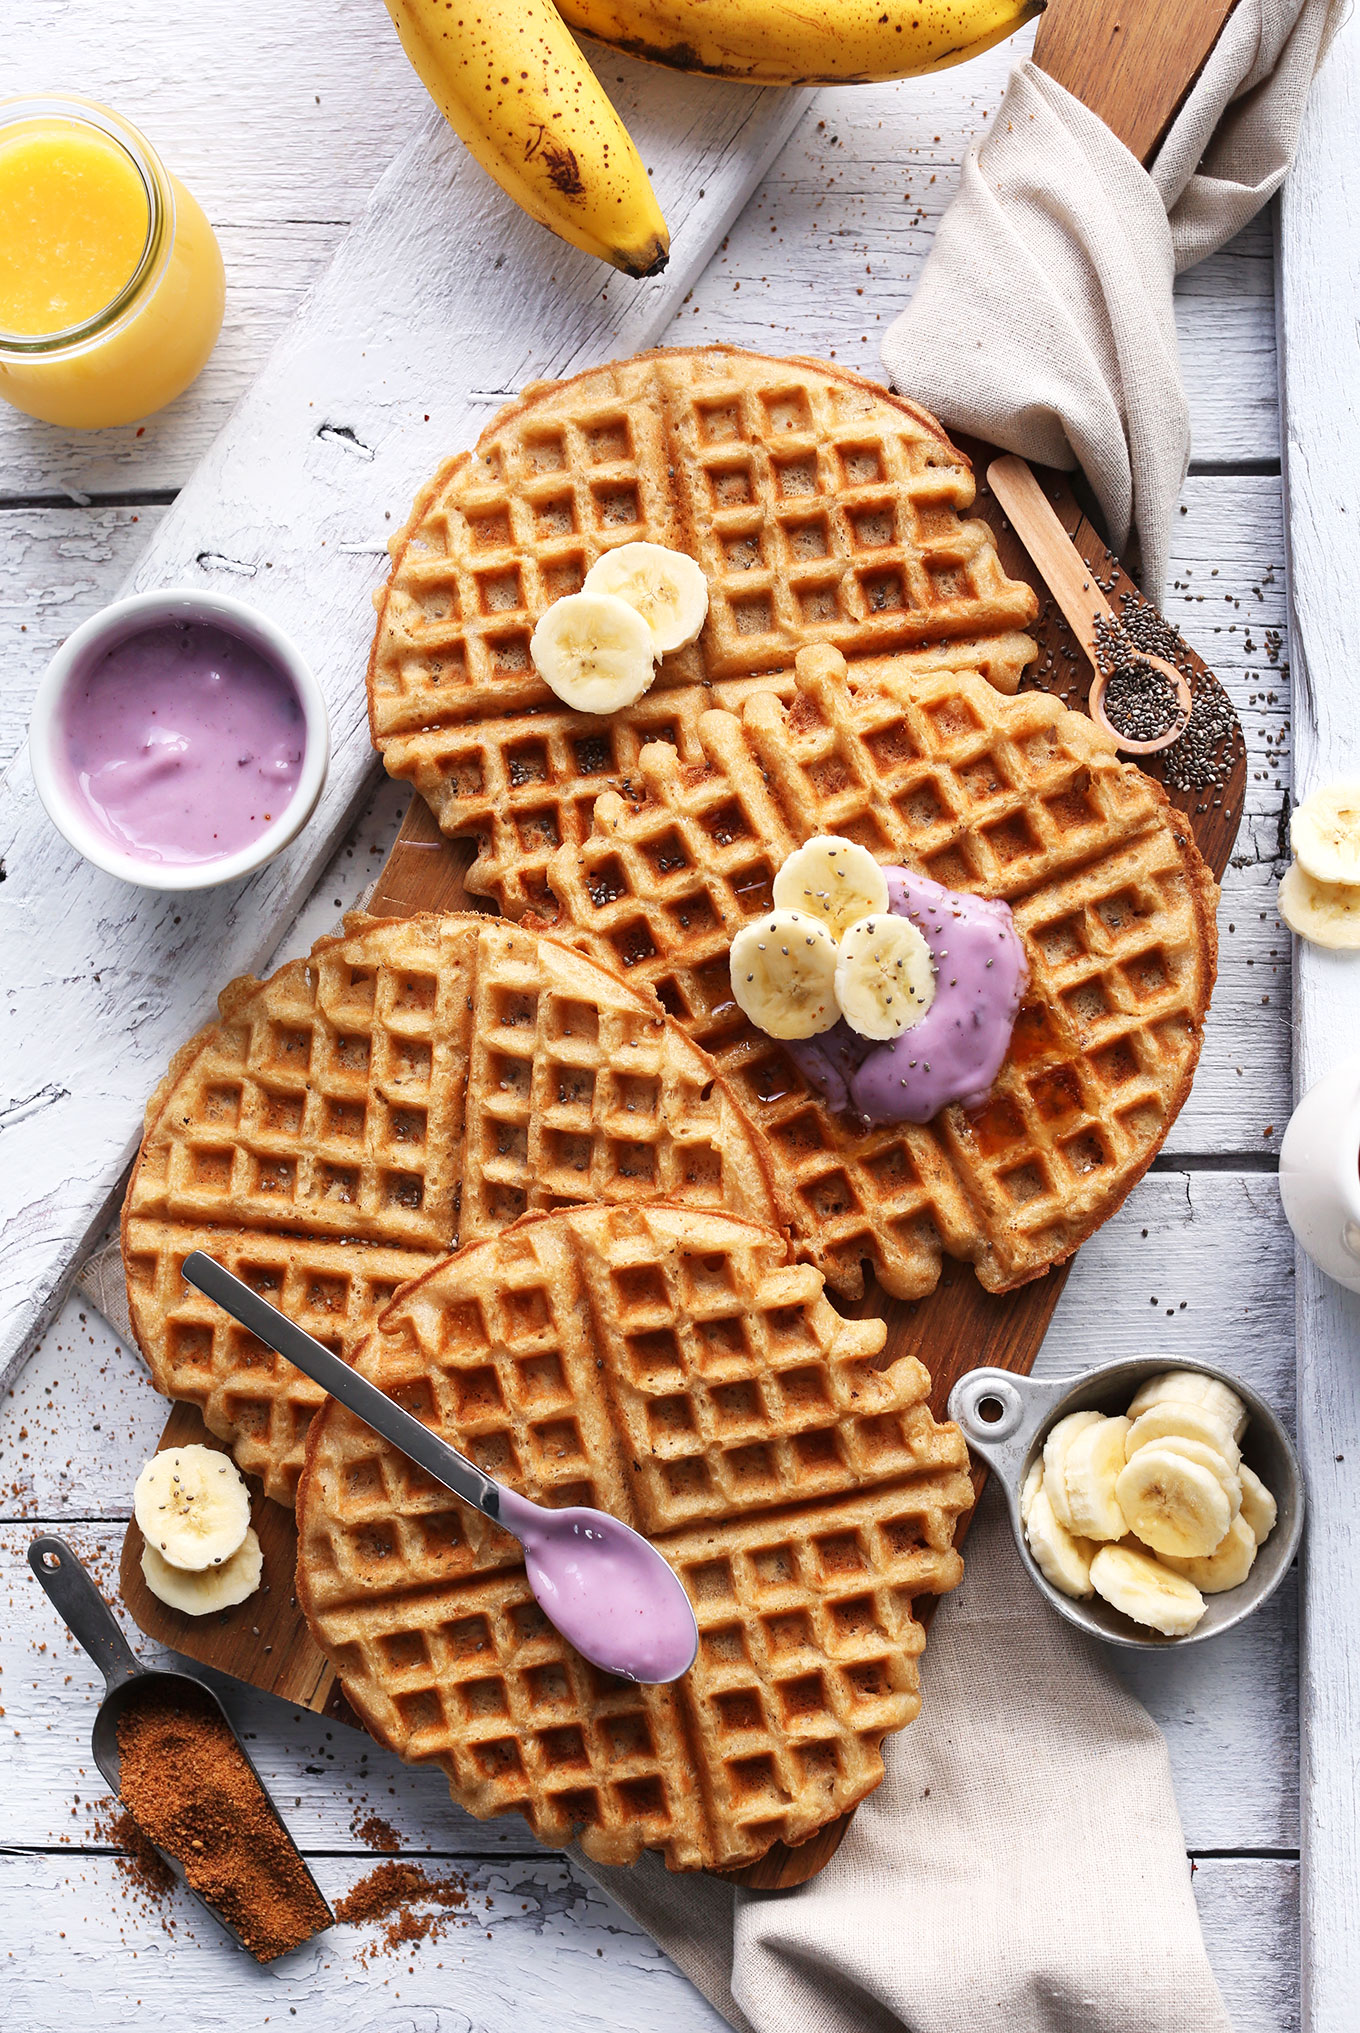 Homemade Vegan GF Yogurt Waffles that are both crispy and tender